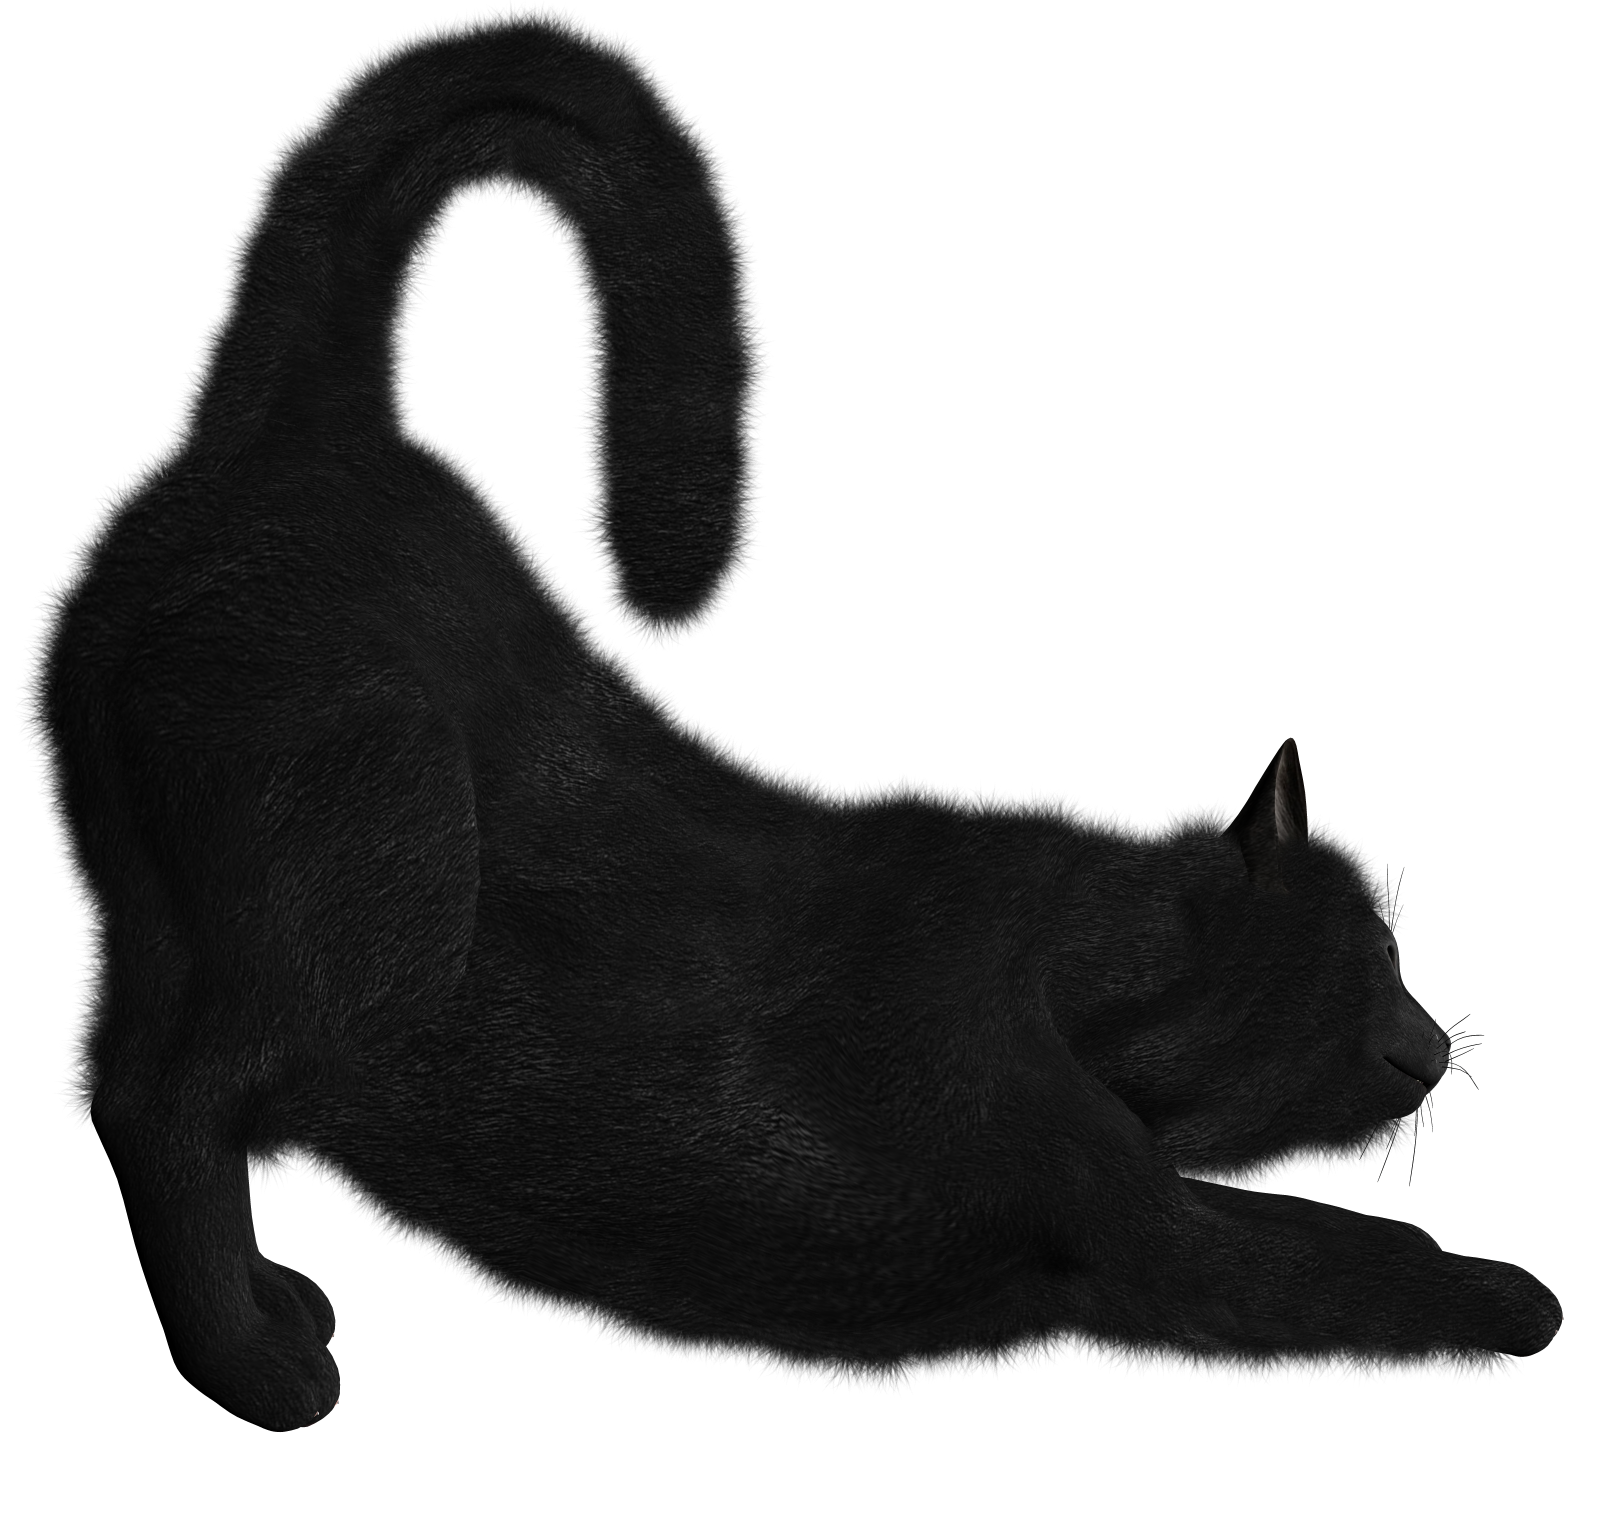 Png Black Cat Collection Clipart image #30364